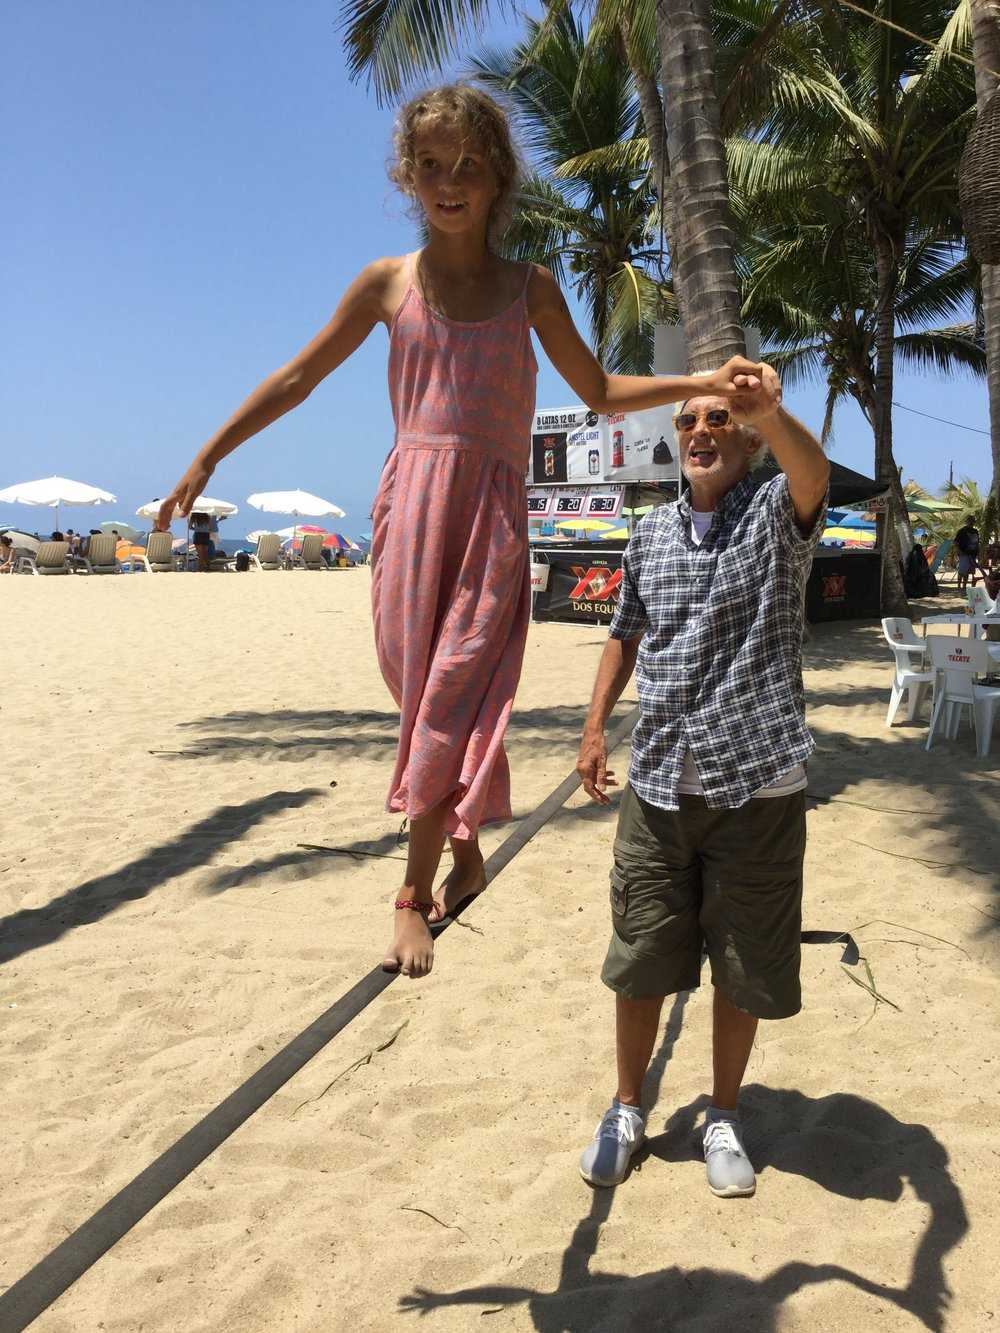 Practicing slacklining in the San Pancho beach. It is not as easy as it looks...